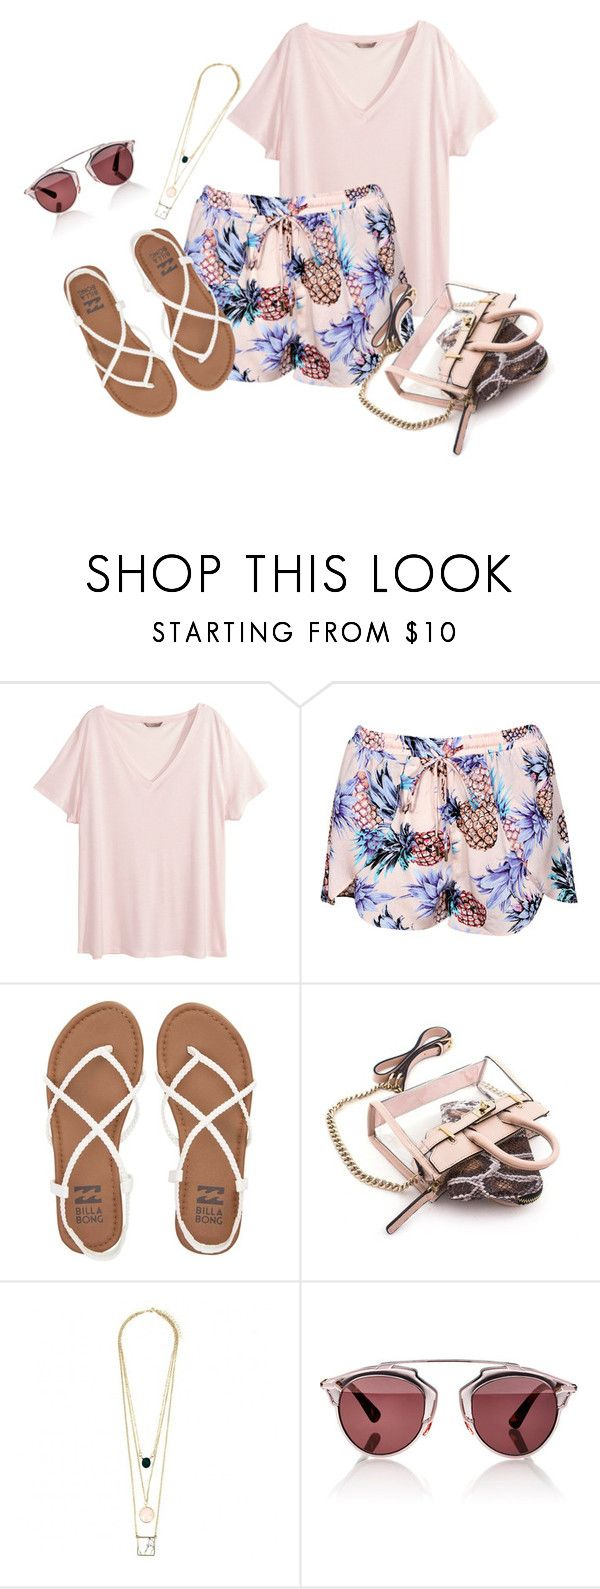 """""""Untitled #47"""" by explorer-14546802142 ❤ liked on Polyvore featuring H&M, Billabong, Mohzy and Christian Dior"""